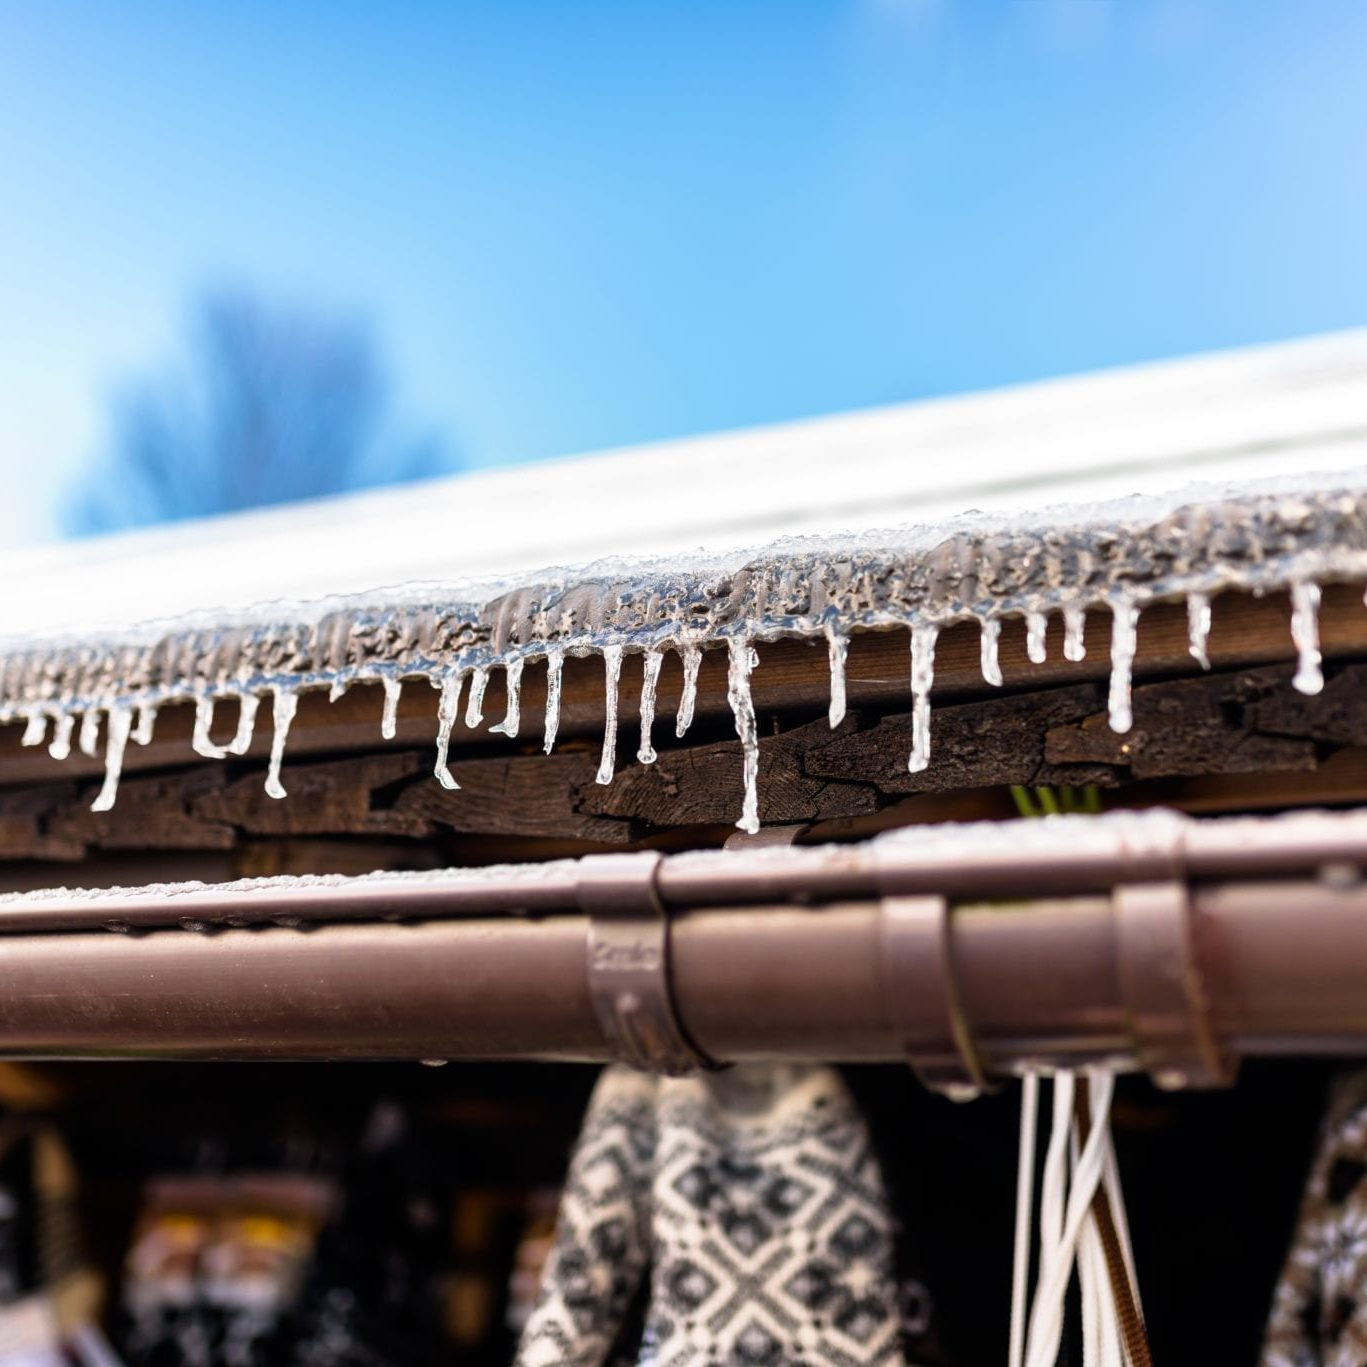 hanging-icicles-from-the-roof-of-a-wooden-building-GQPCP9X